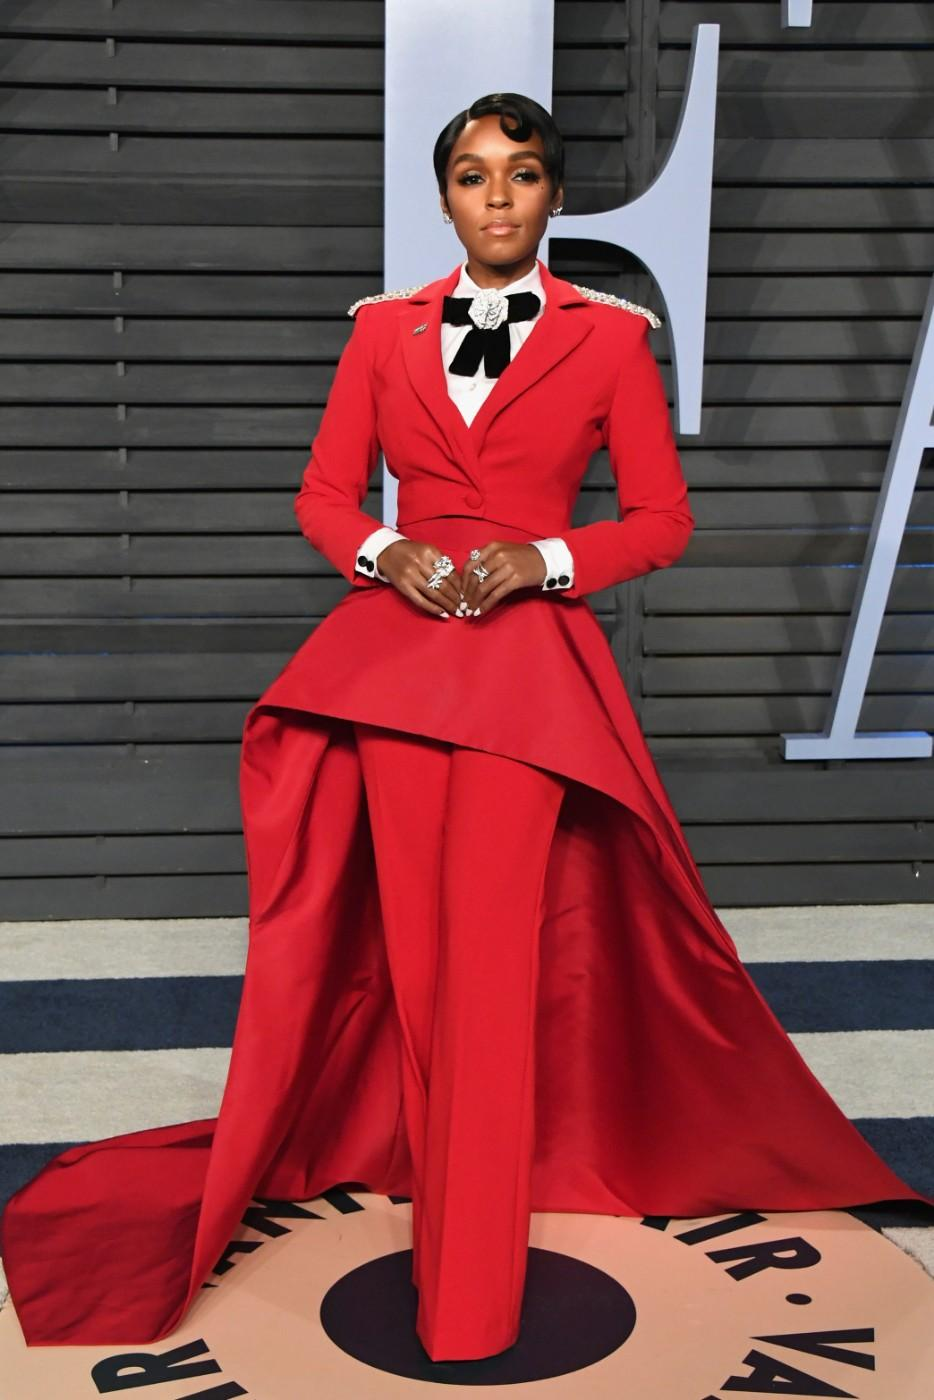 Janelle Monáe in a Christian Siriano red evening suit, shirt and accessories at the 2018 Vanity Fair Oscar Party